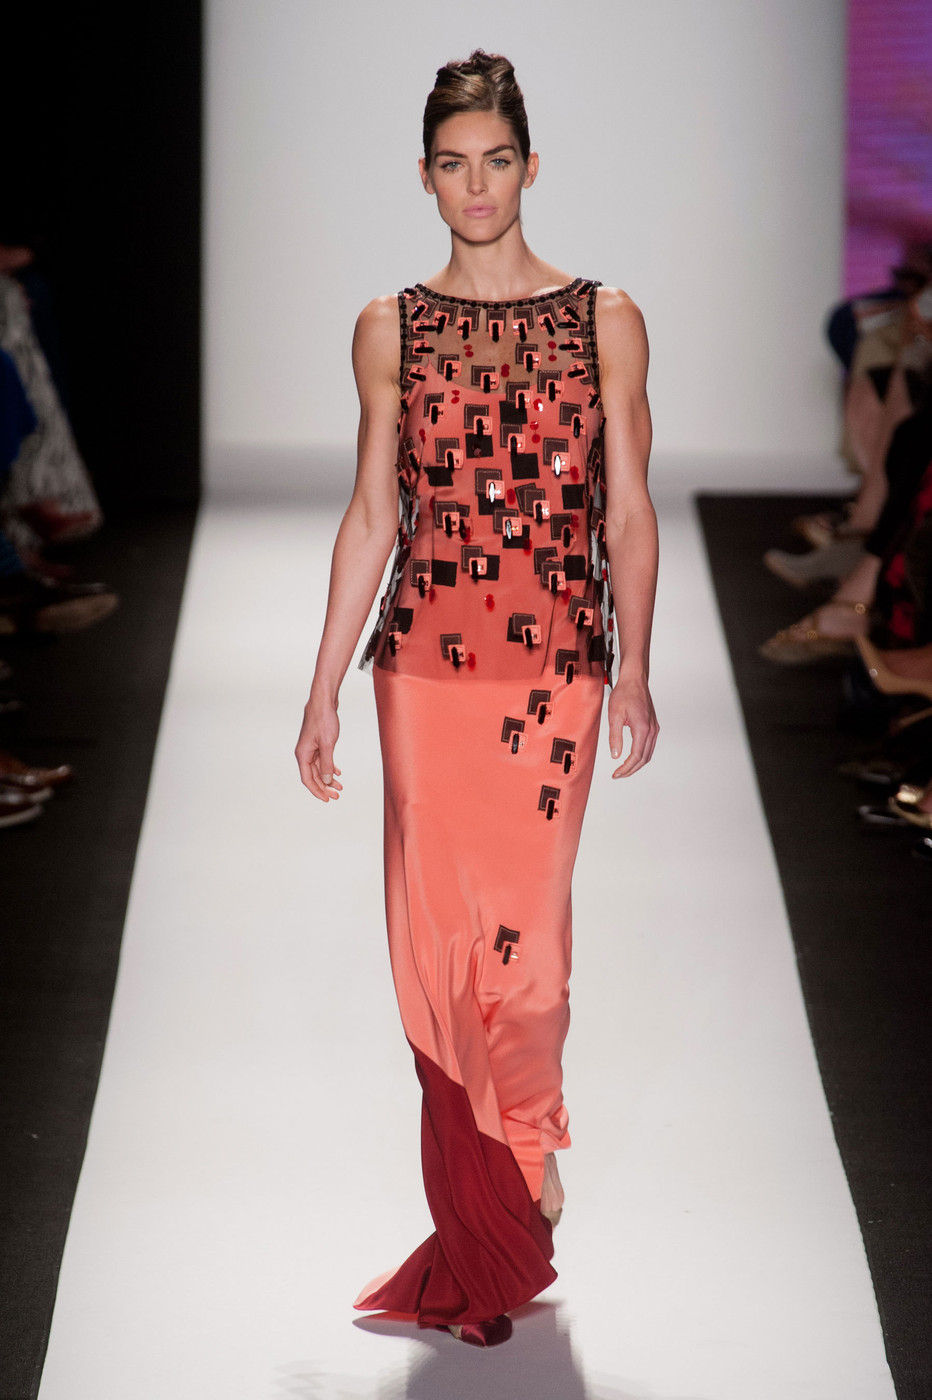 NEW YORK FASHION WEEK: CAROLINA HERRERA SPRING 2014